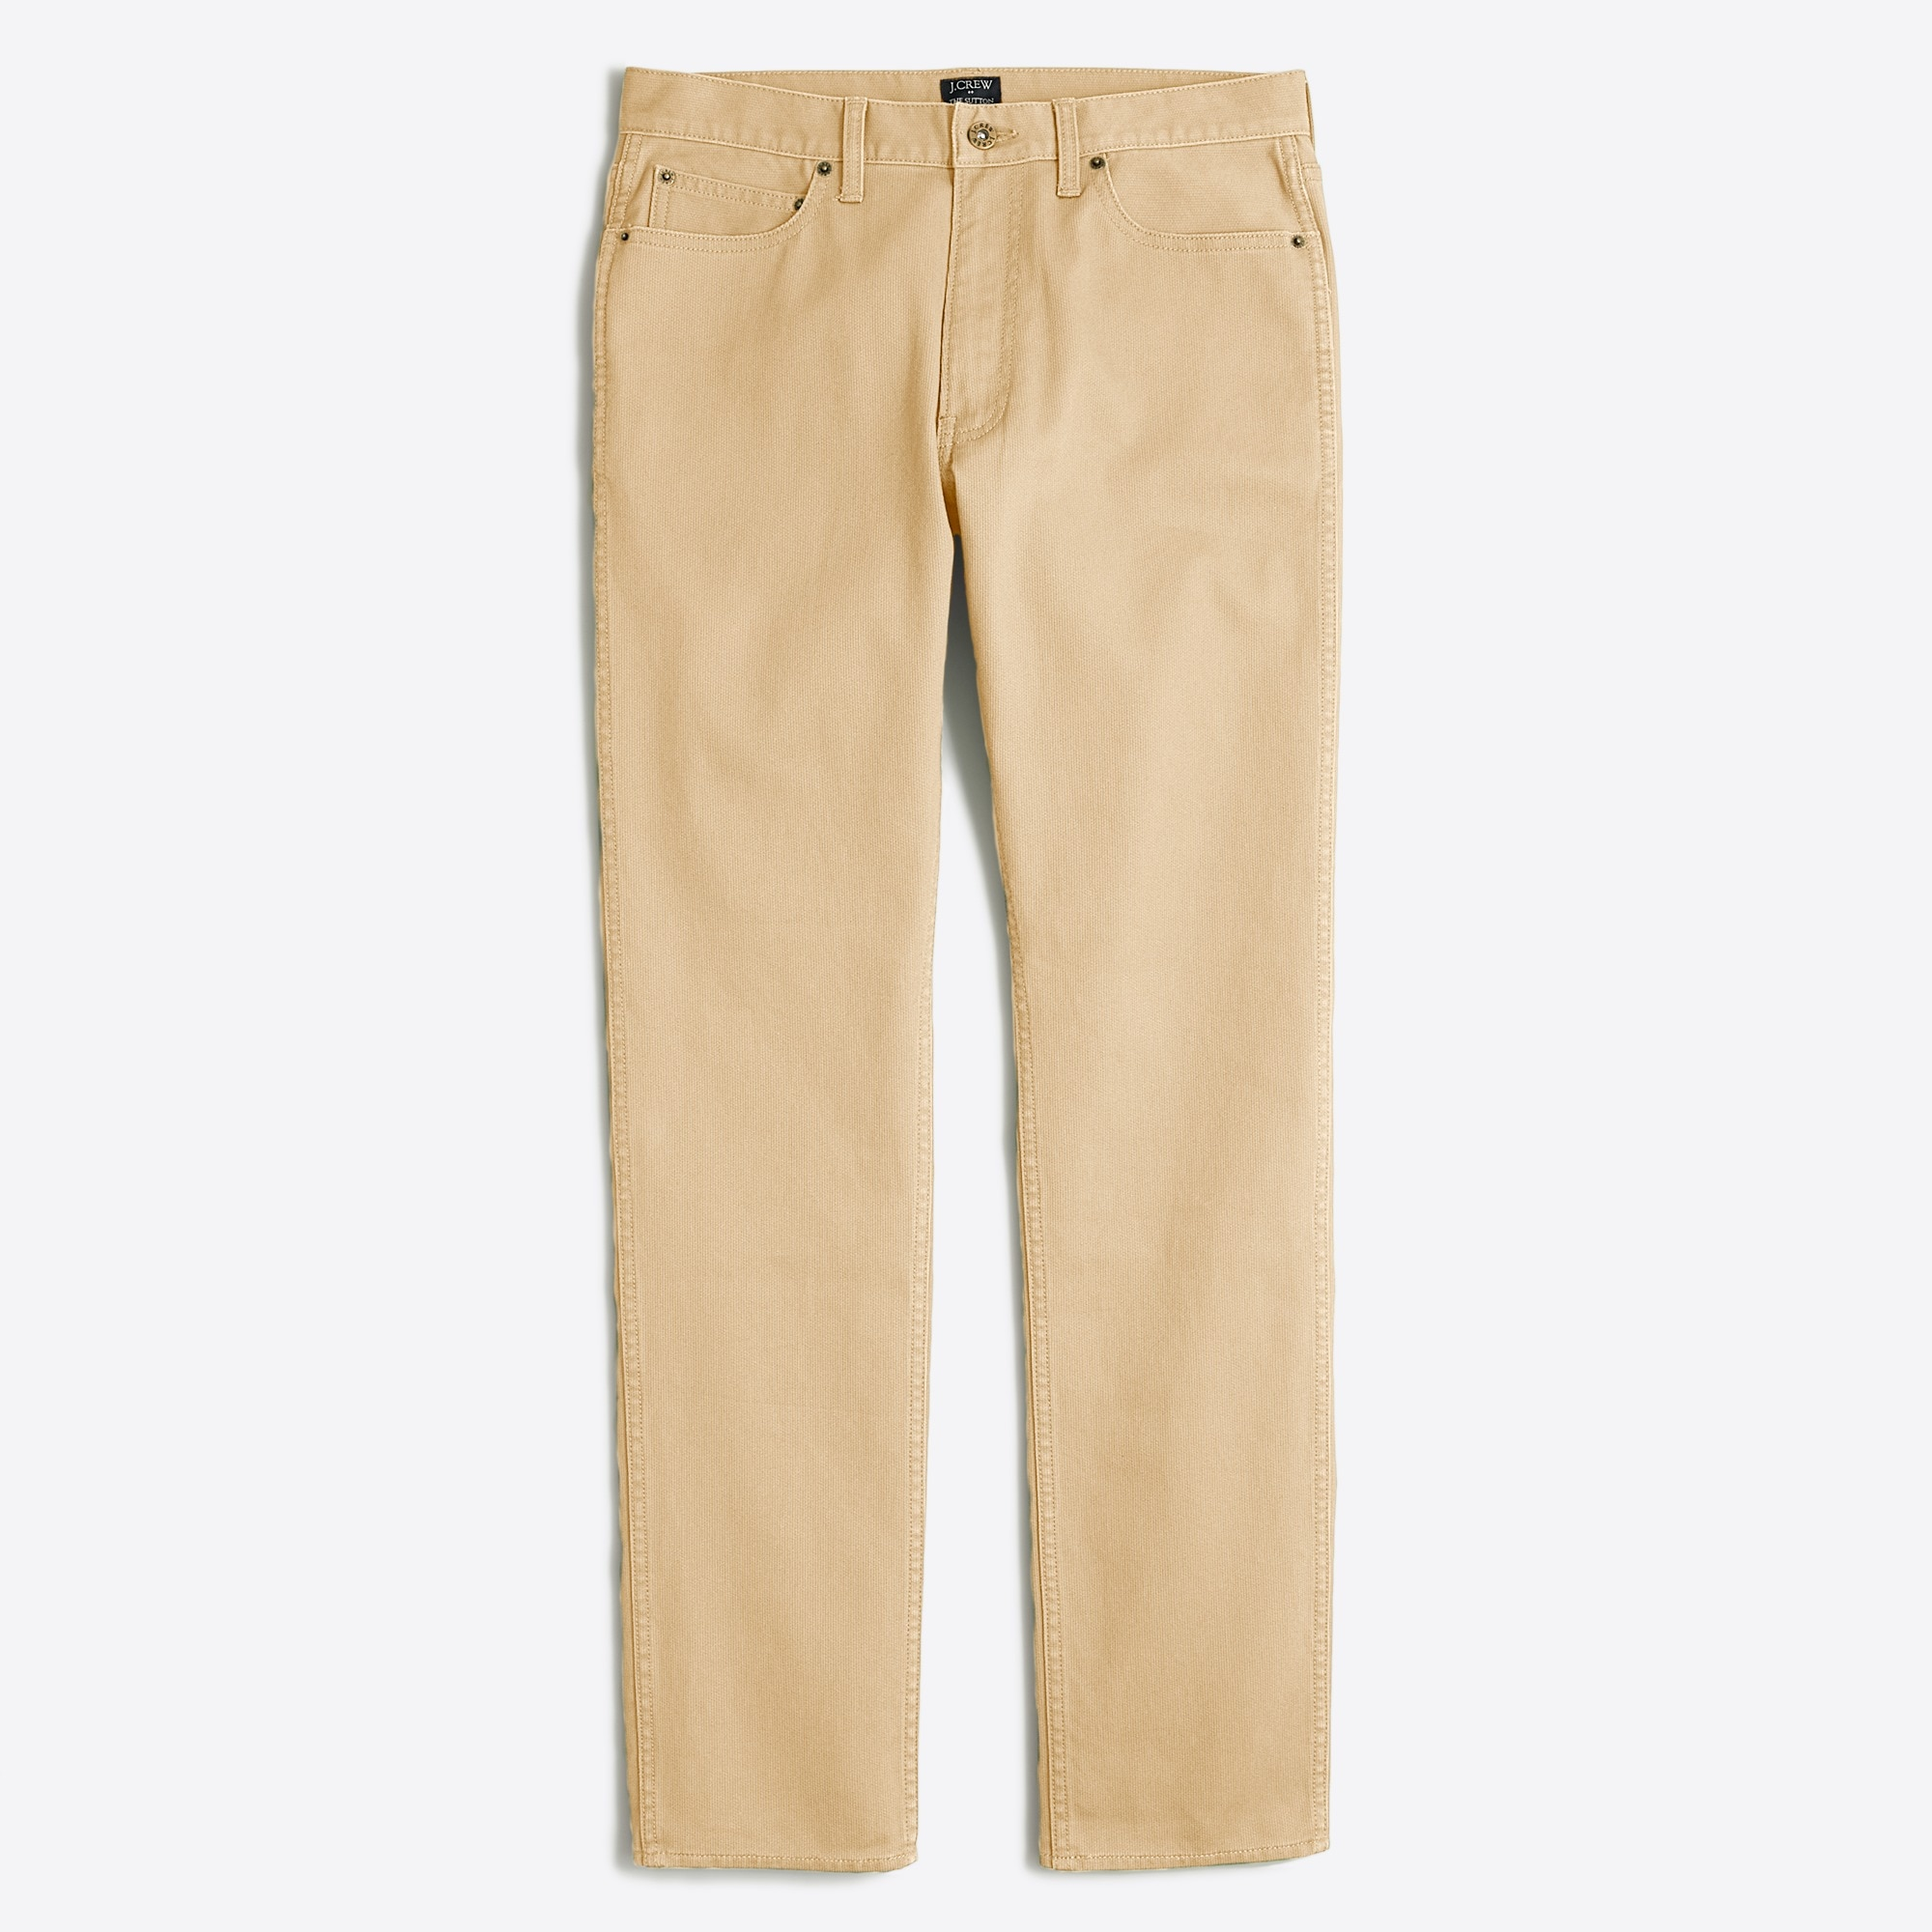 Sutton straight-fit corded cotton pant